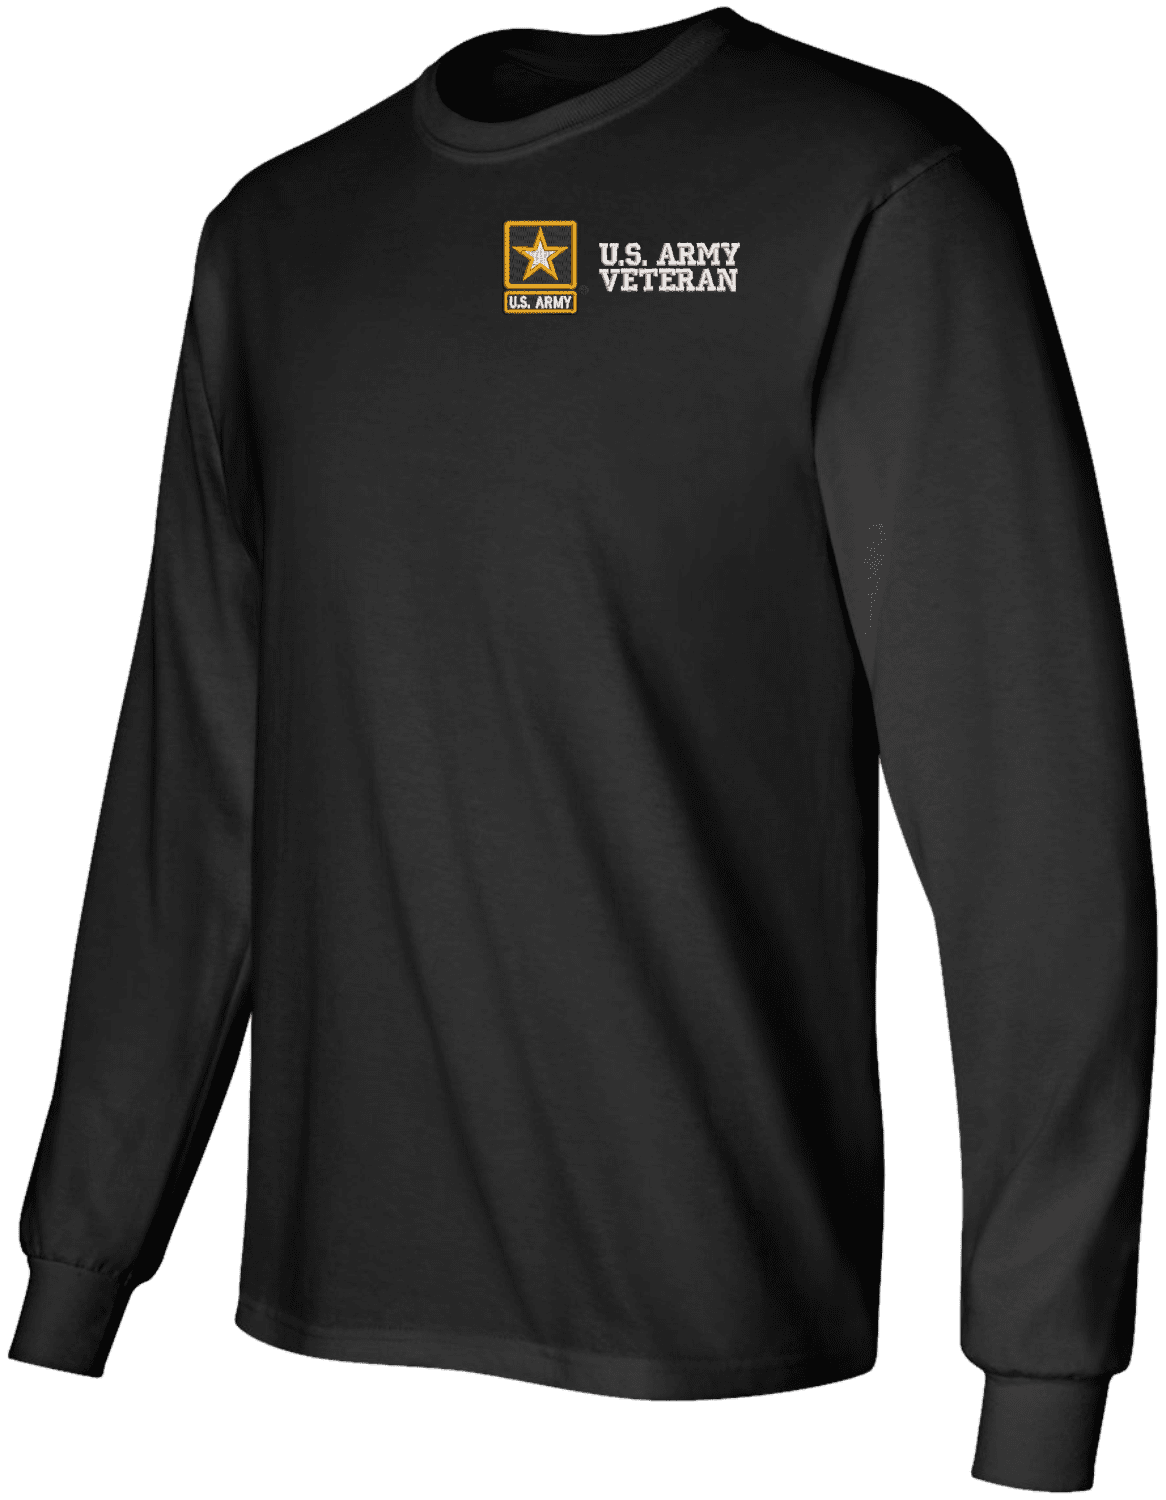 ARMY STYLE EMBROIDERED LONG SLEEVE SHIRT WITH STAR SHAPE BRASS STUDS 100/% COTTON